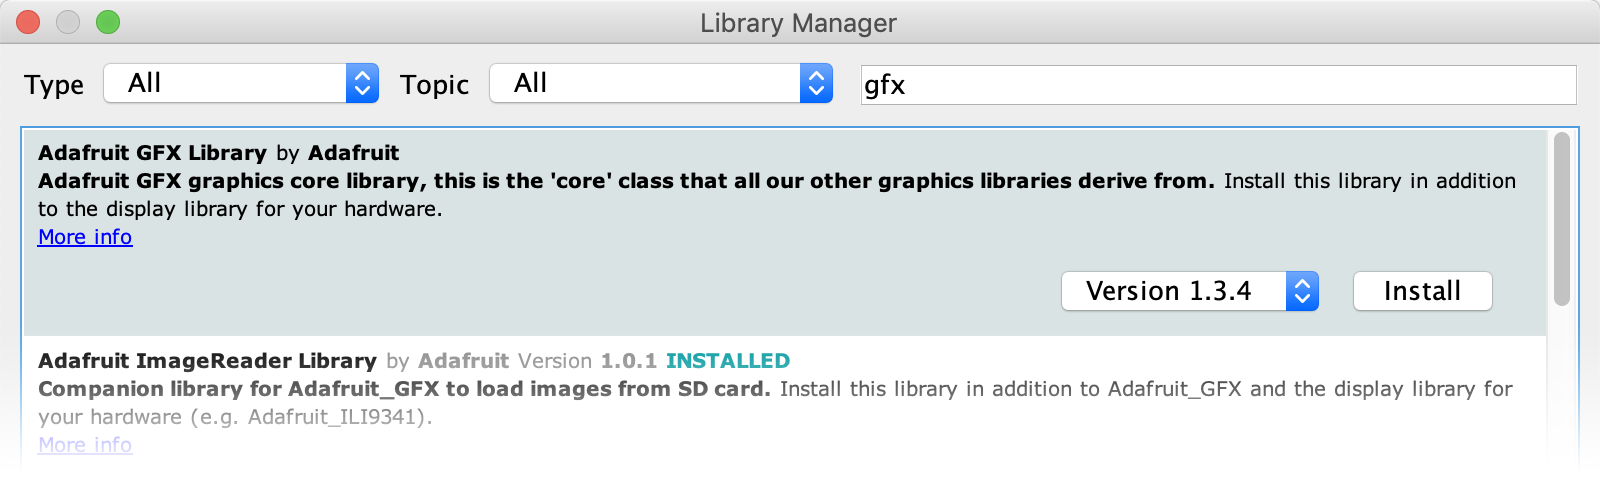 arduino_compatibles_adafruit-gfx-library-manager.png